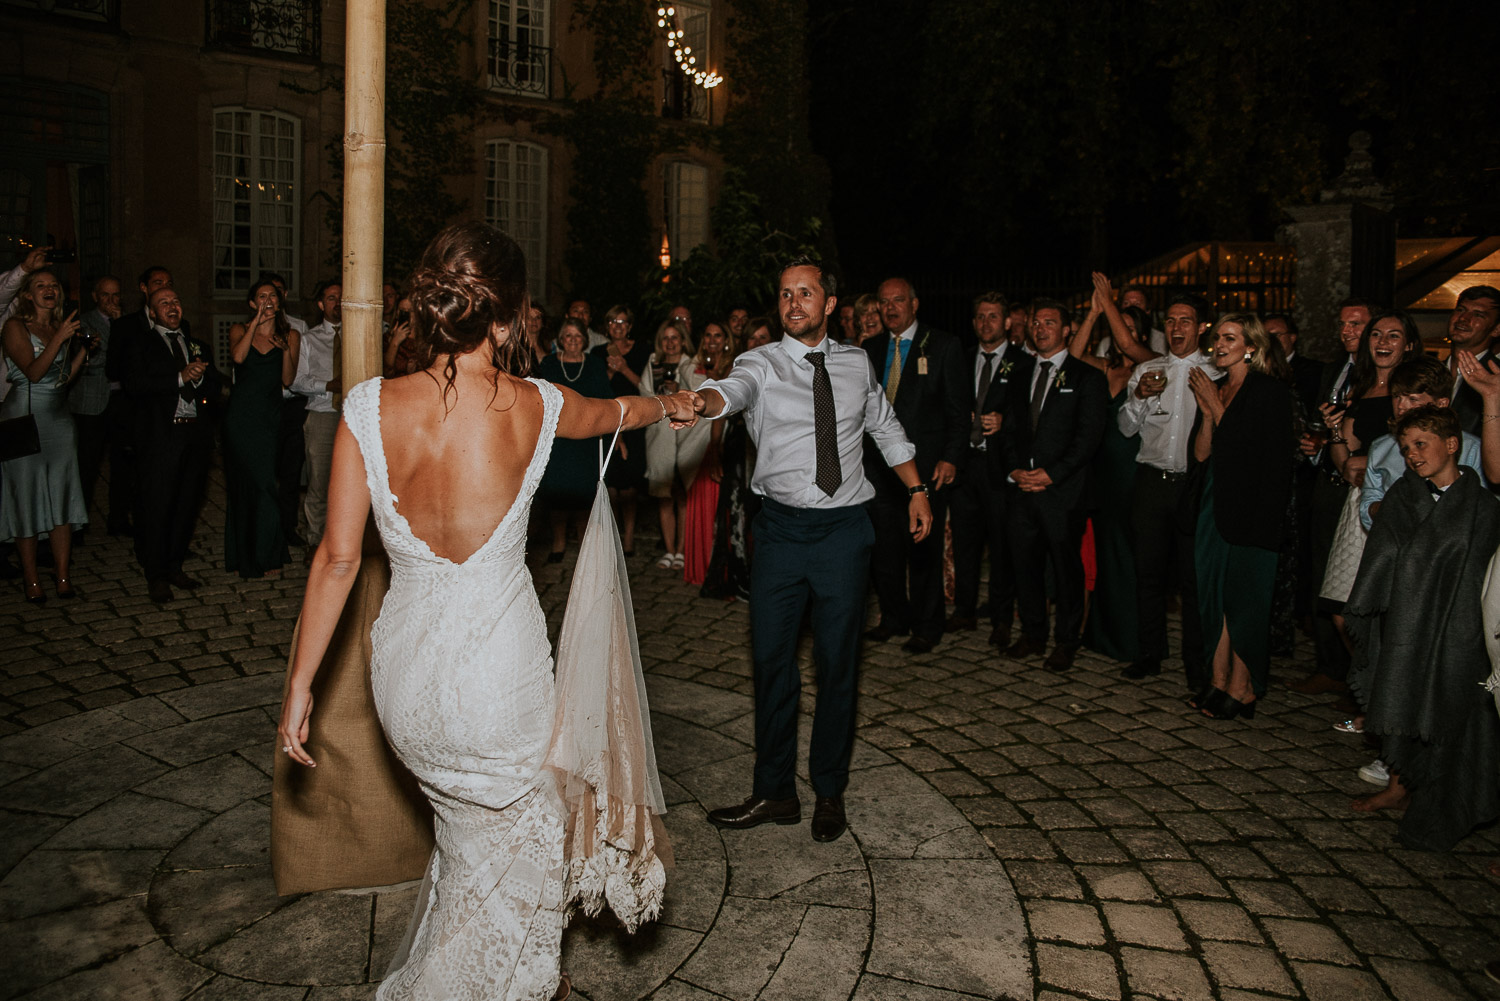 bergerac_wedding_katy_webb_photography_france_UK170